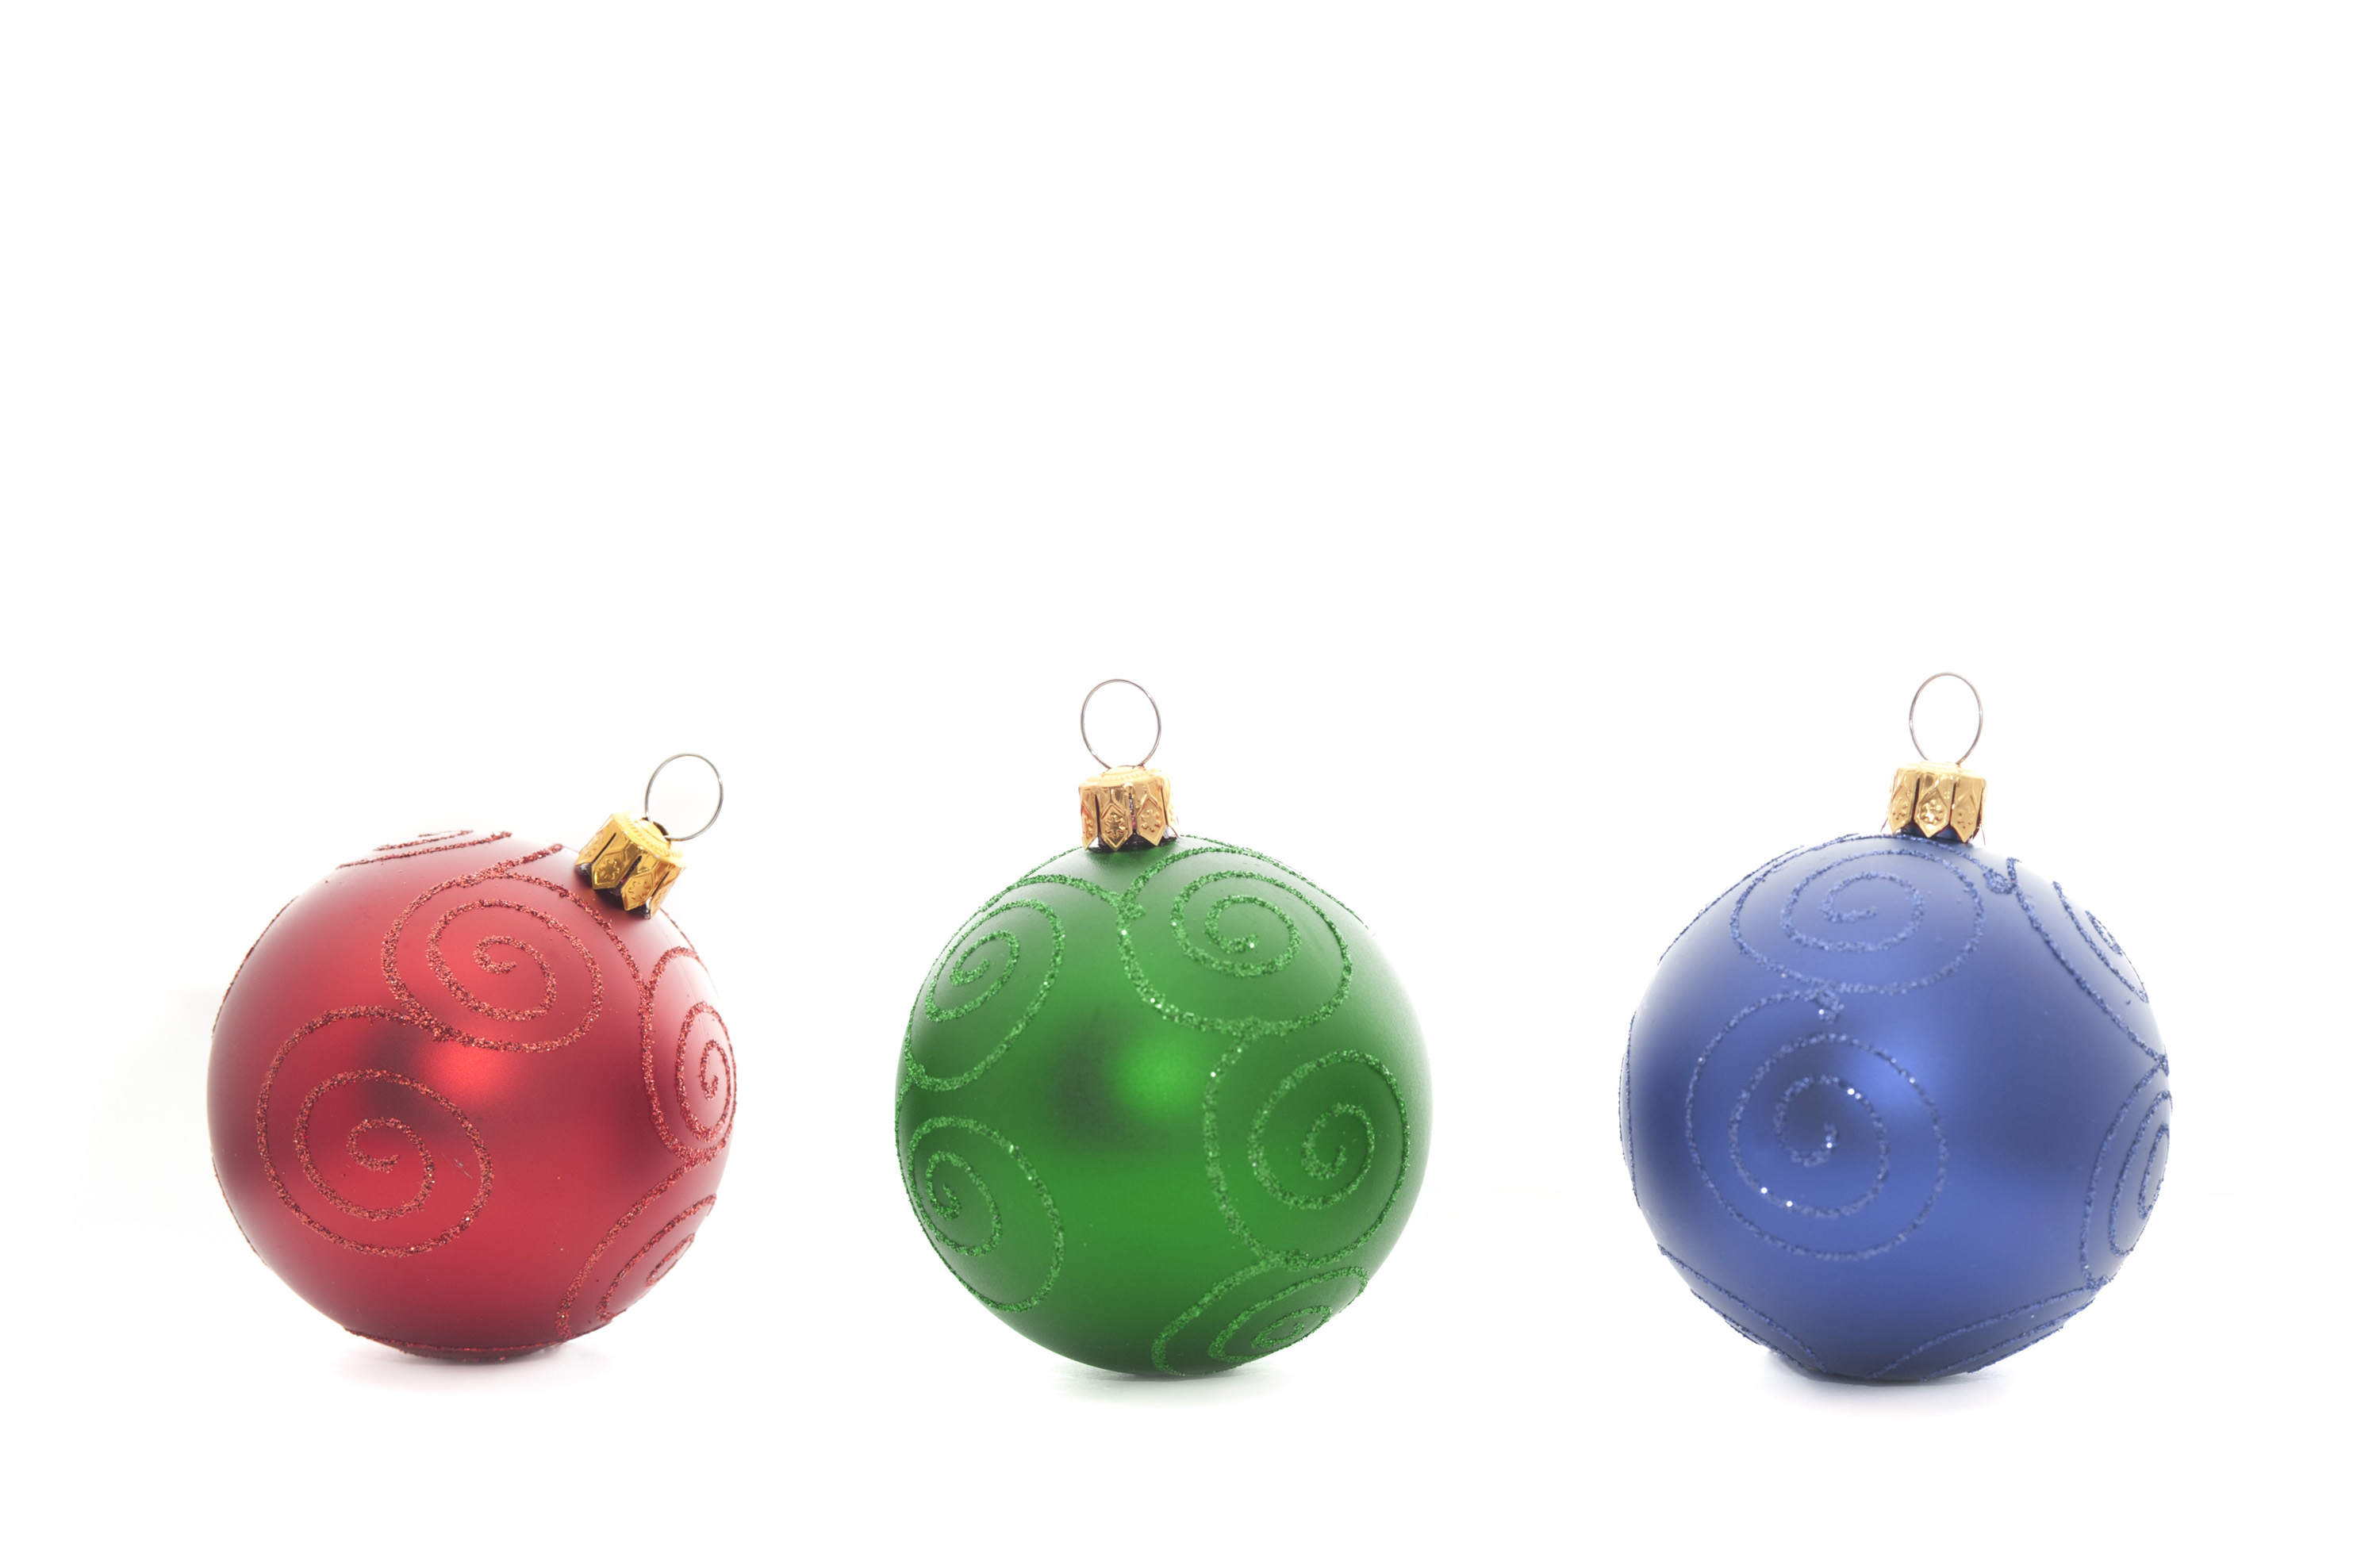 Red, green and blue baubles in a row on a white background with copyspace for your Christmas greeting or message